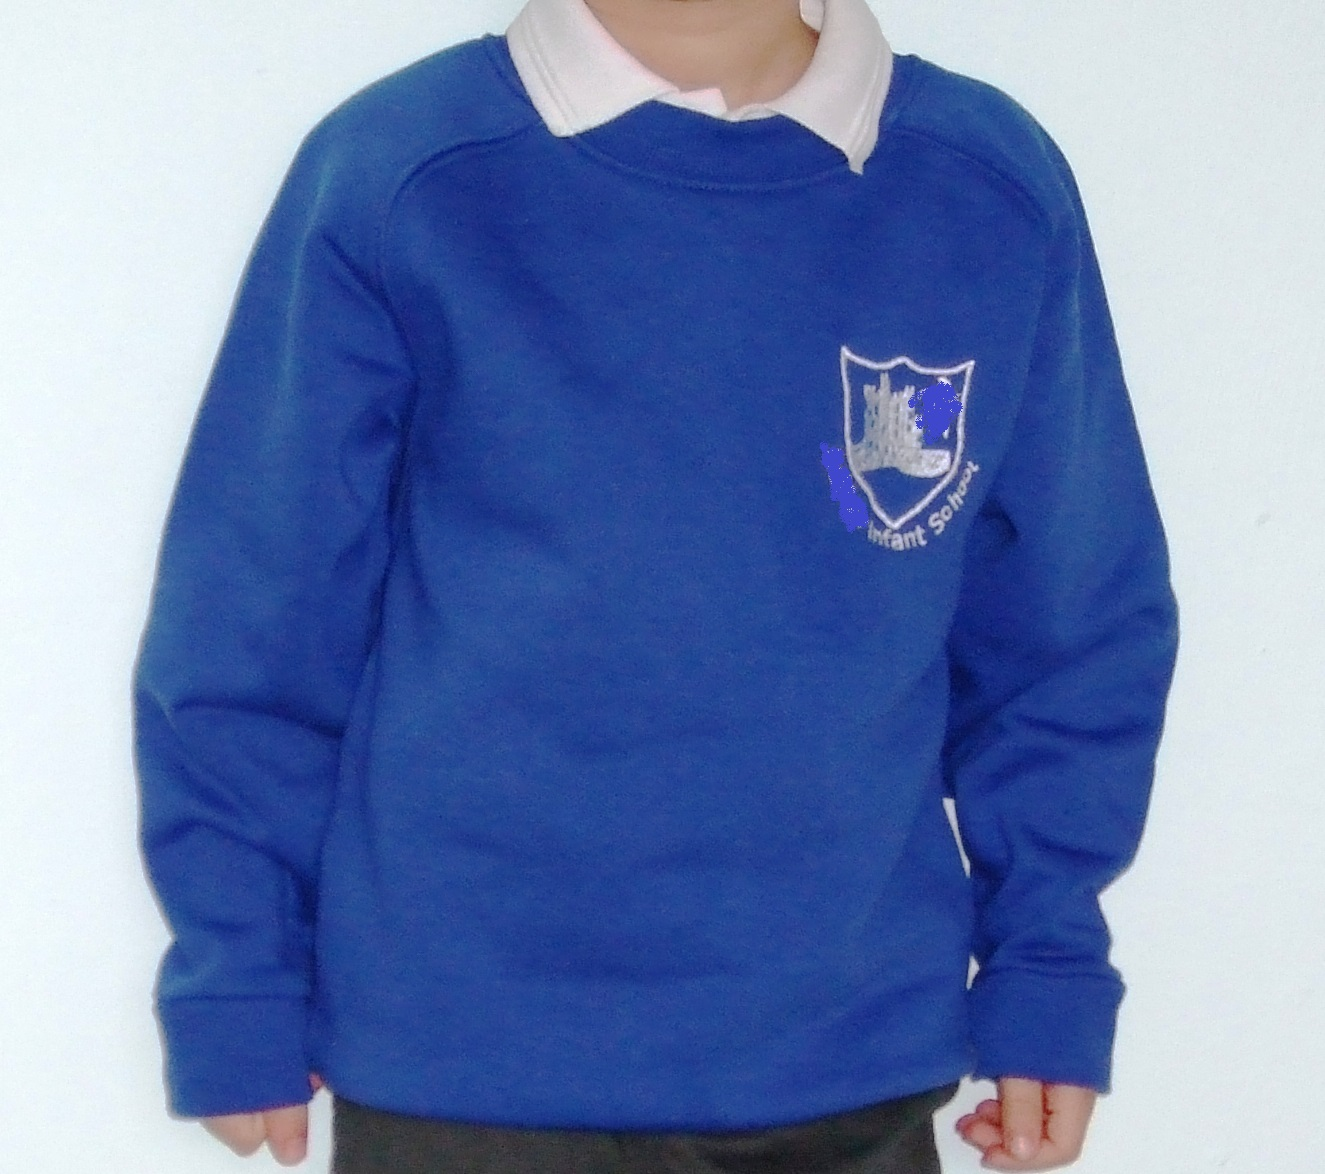 Image result for school sweatshirt